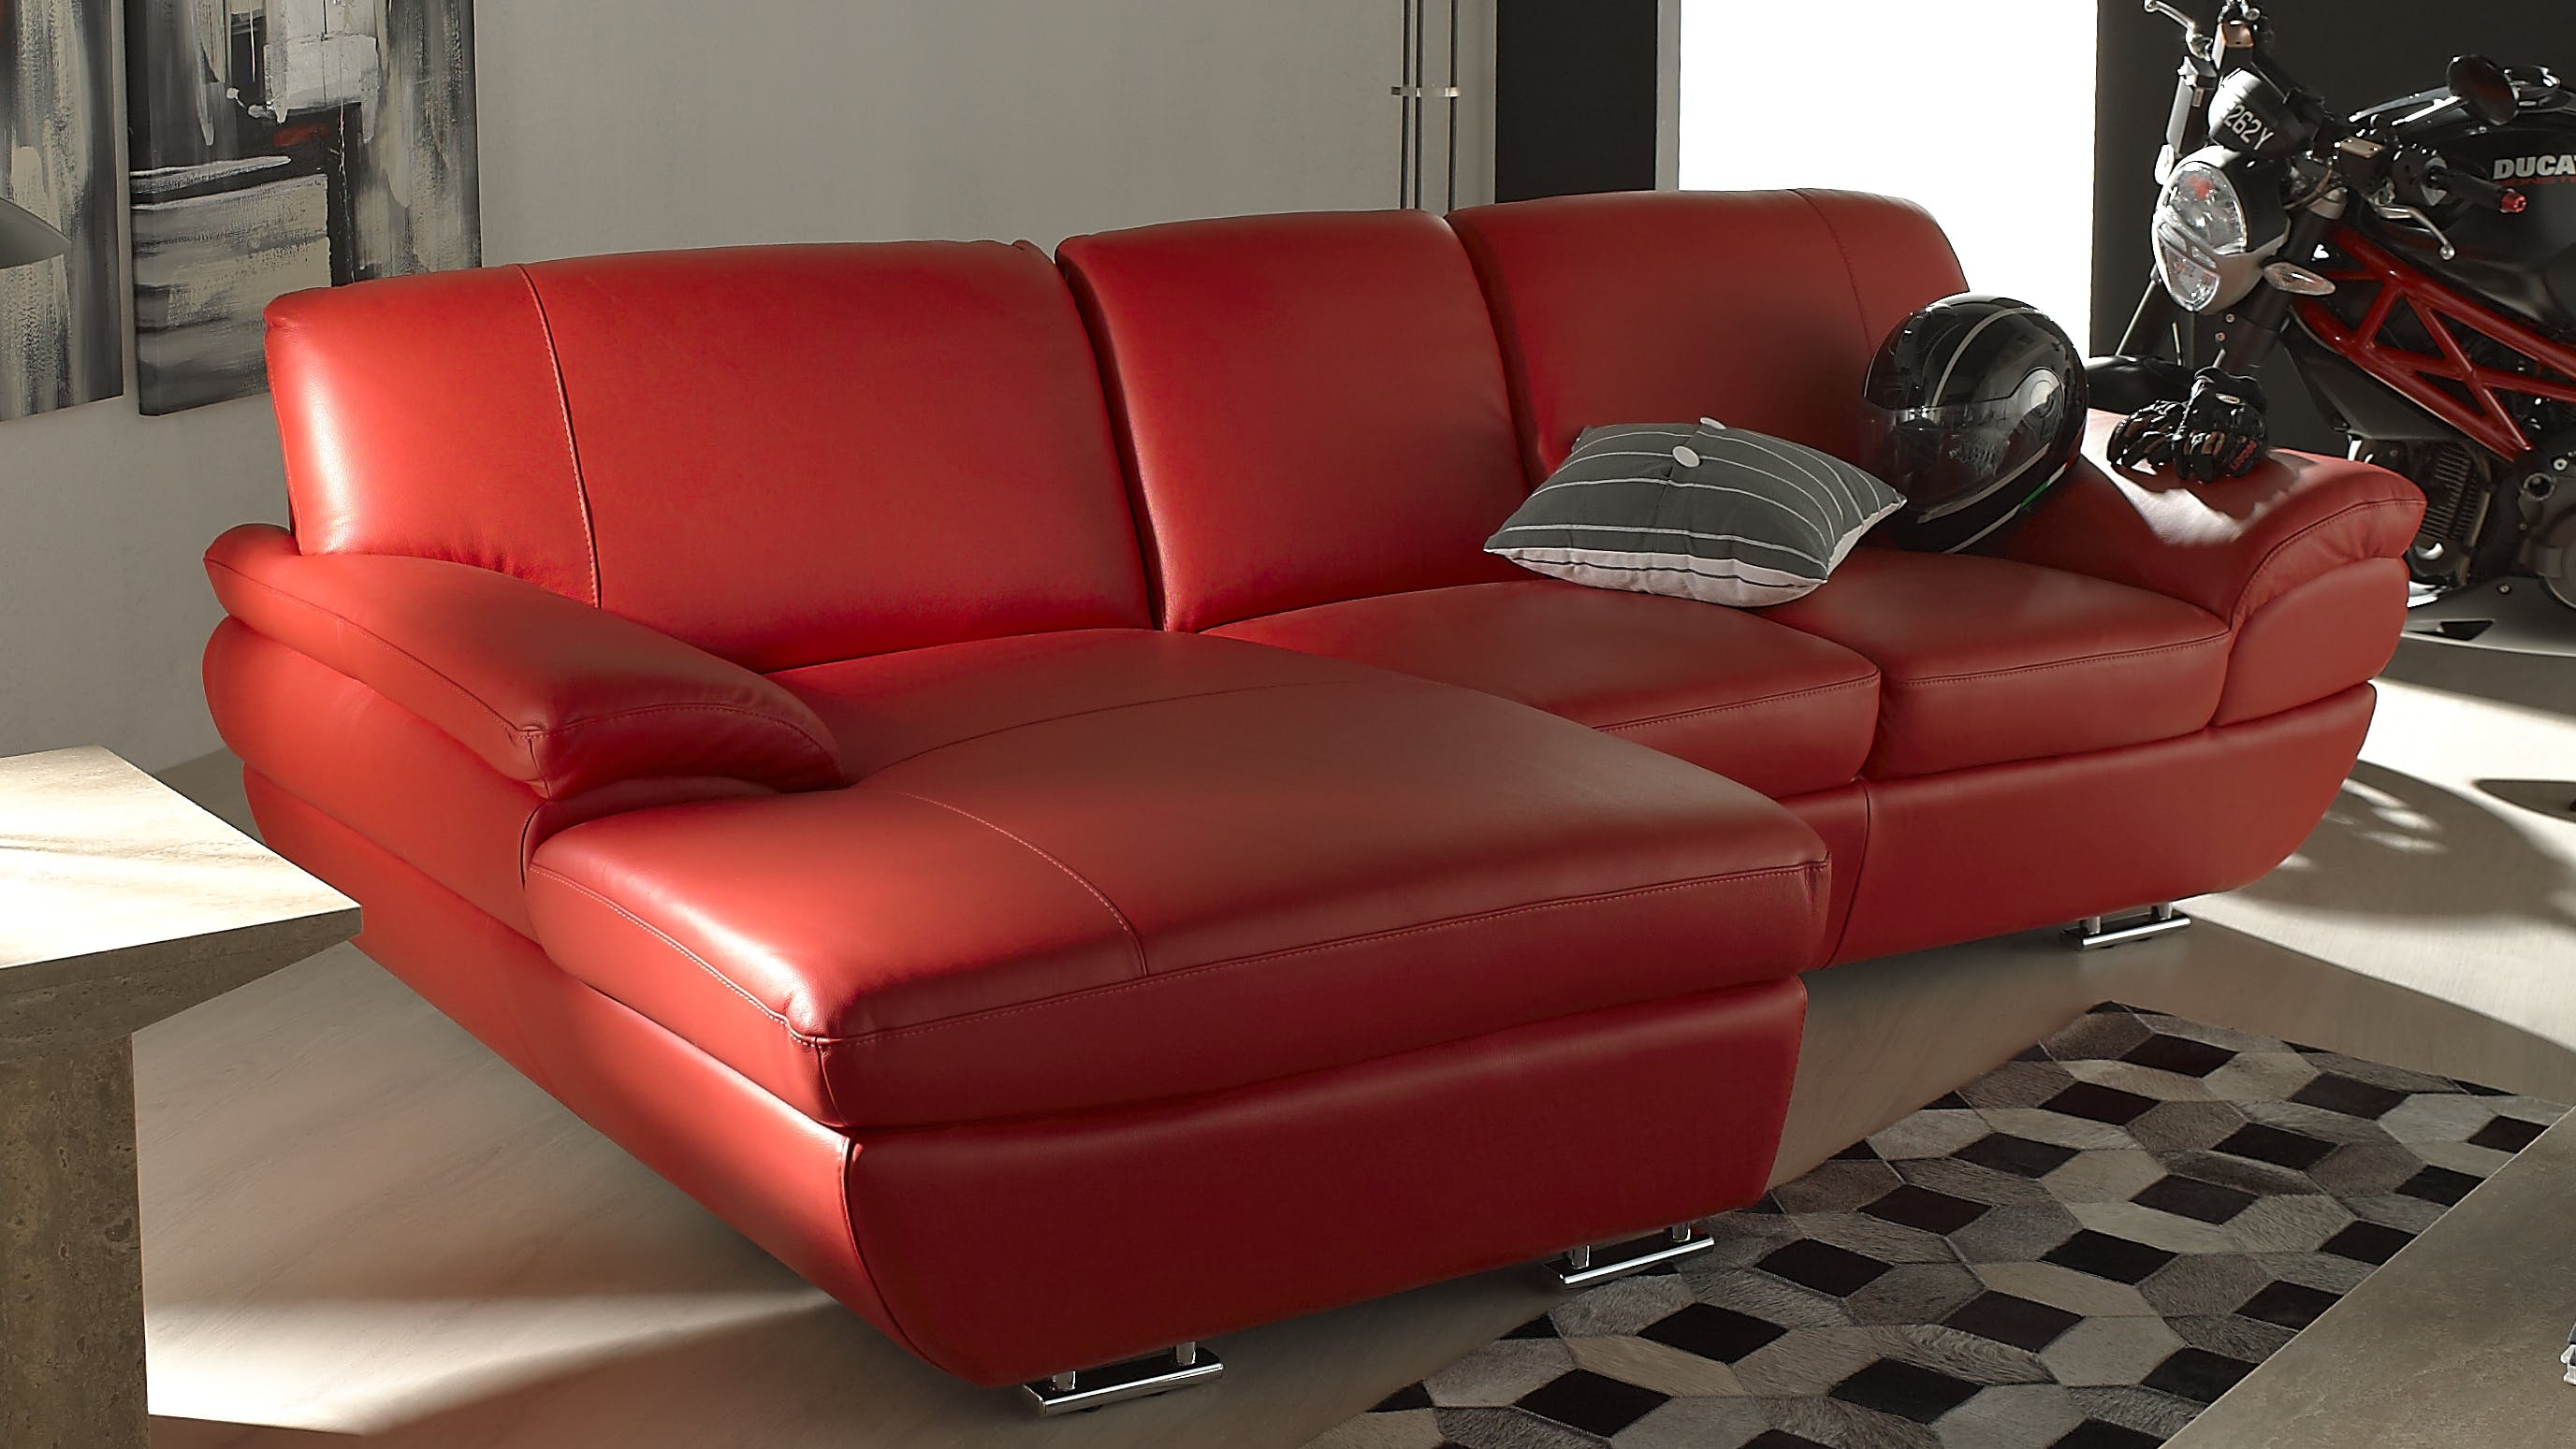 Saporini marta full leather 2 seater sofa with chaise for 2 seater chaise lounge